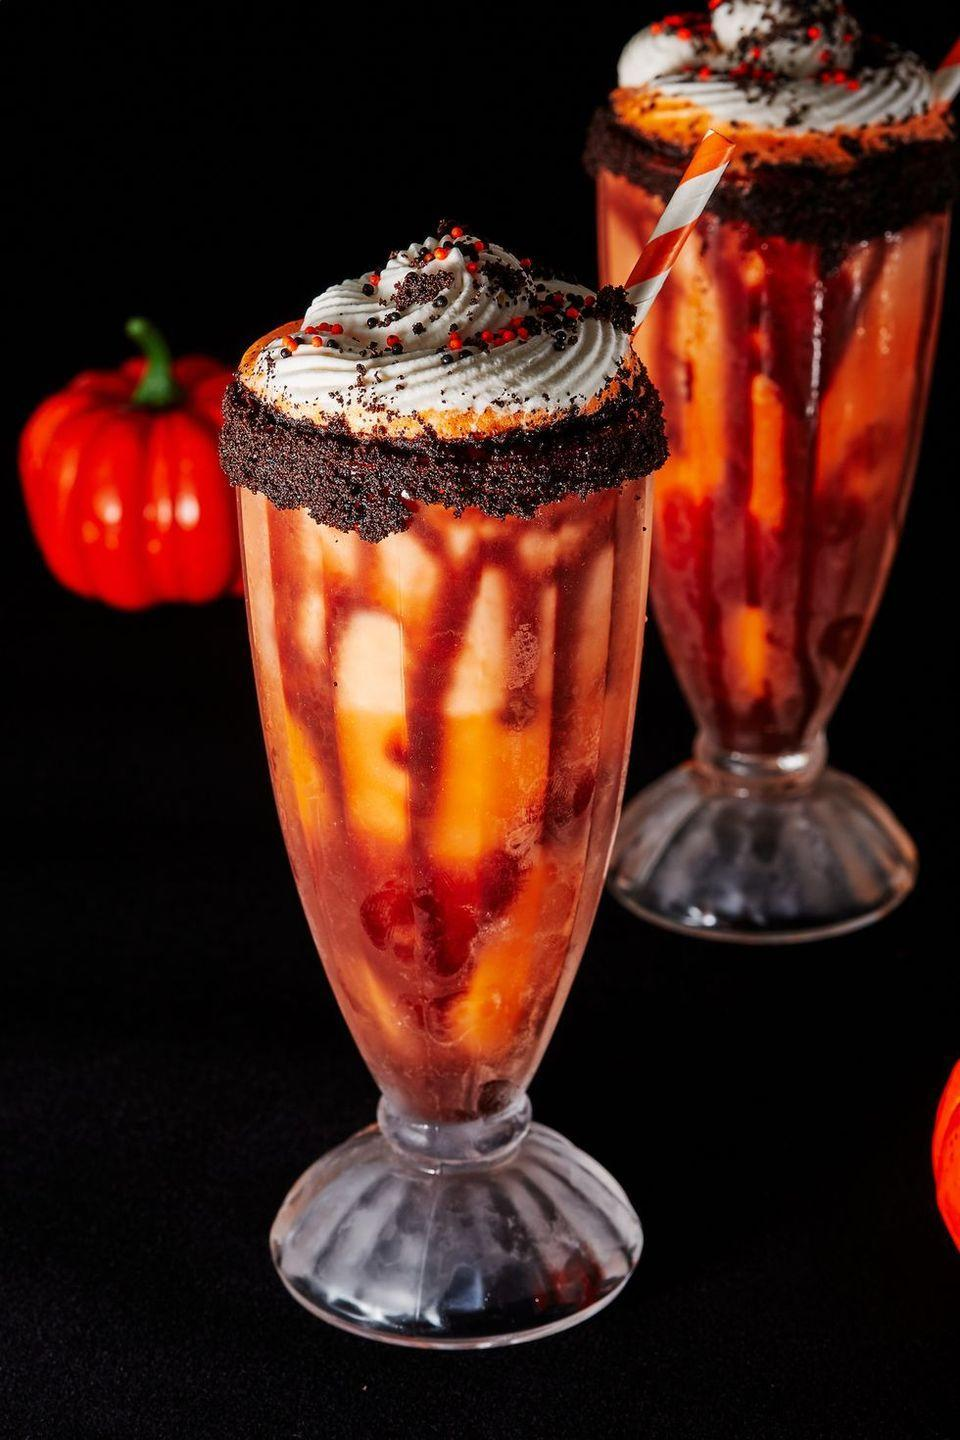 """<p>Getting excited for Halloween? Get the party started early with these delicious (and boozy) shakes! </p><p>Get the <a href=""""https://www.delish.com/uk/cocktails-drinks/a37513177/boozy-screamsicle-shakes-recipe/"""" rel=""""nofollow noopener"""" target=""""_blank"""" data-ylk=""""slk:Boozy Screamsicle Shake"""" class=""""link rapid-noclick-resp"""">Boozy Screamsicle Shake</a> recipe.</p>"""